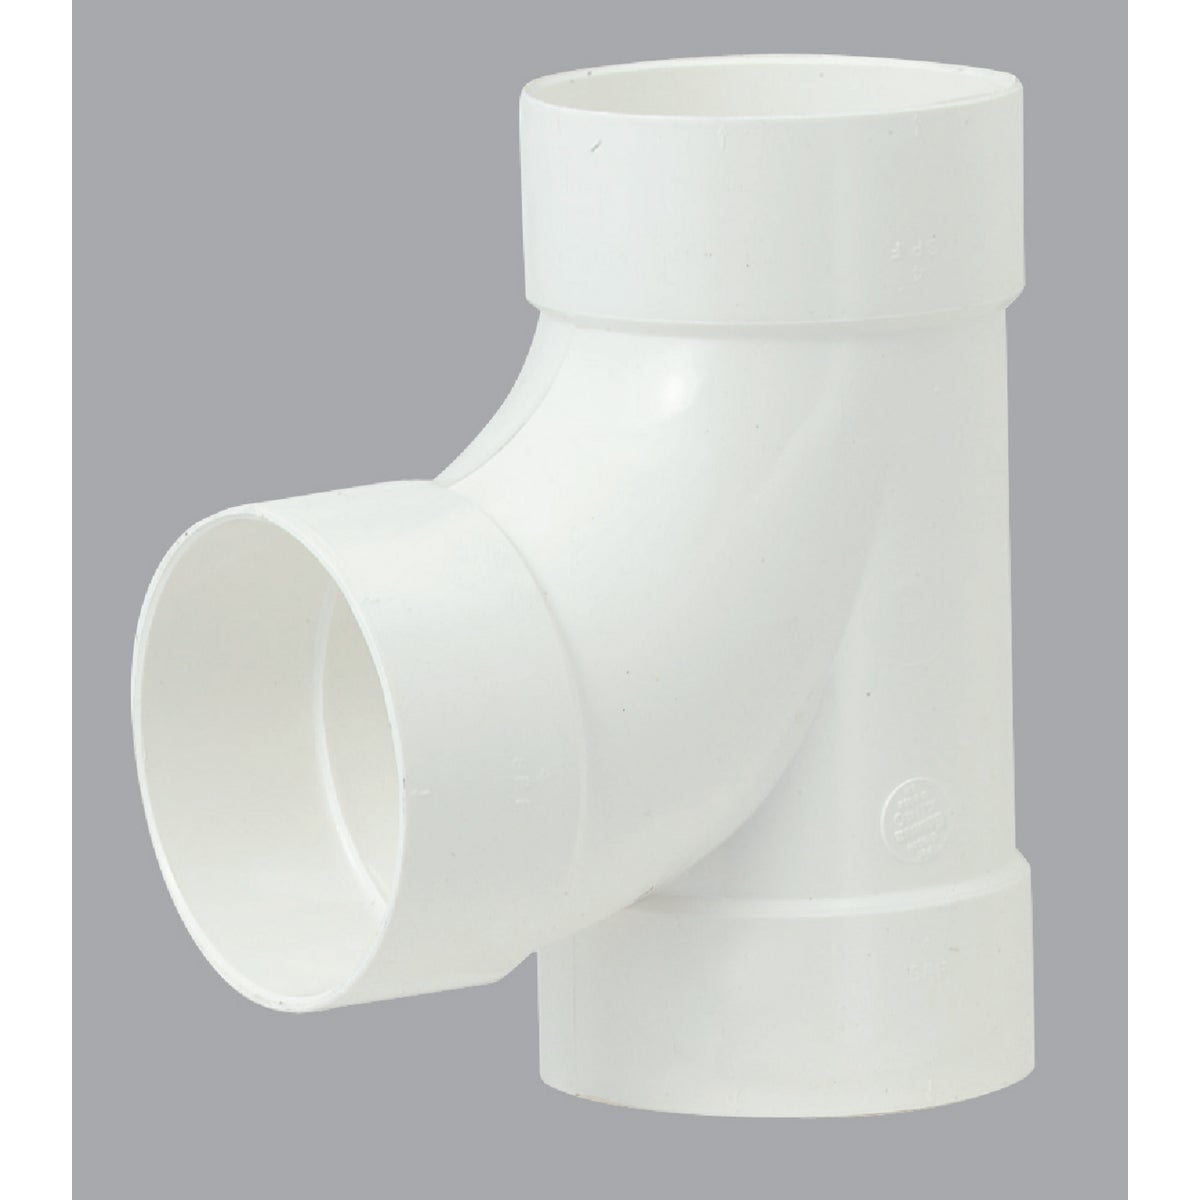 "4"" S&D PVC SANITARY TEE - 41140 by Genova Inc"